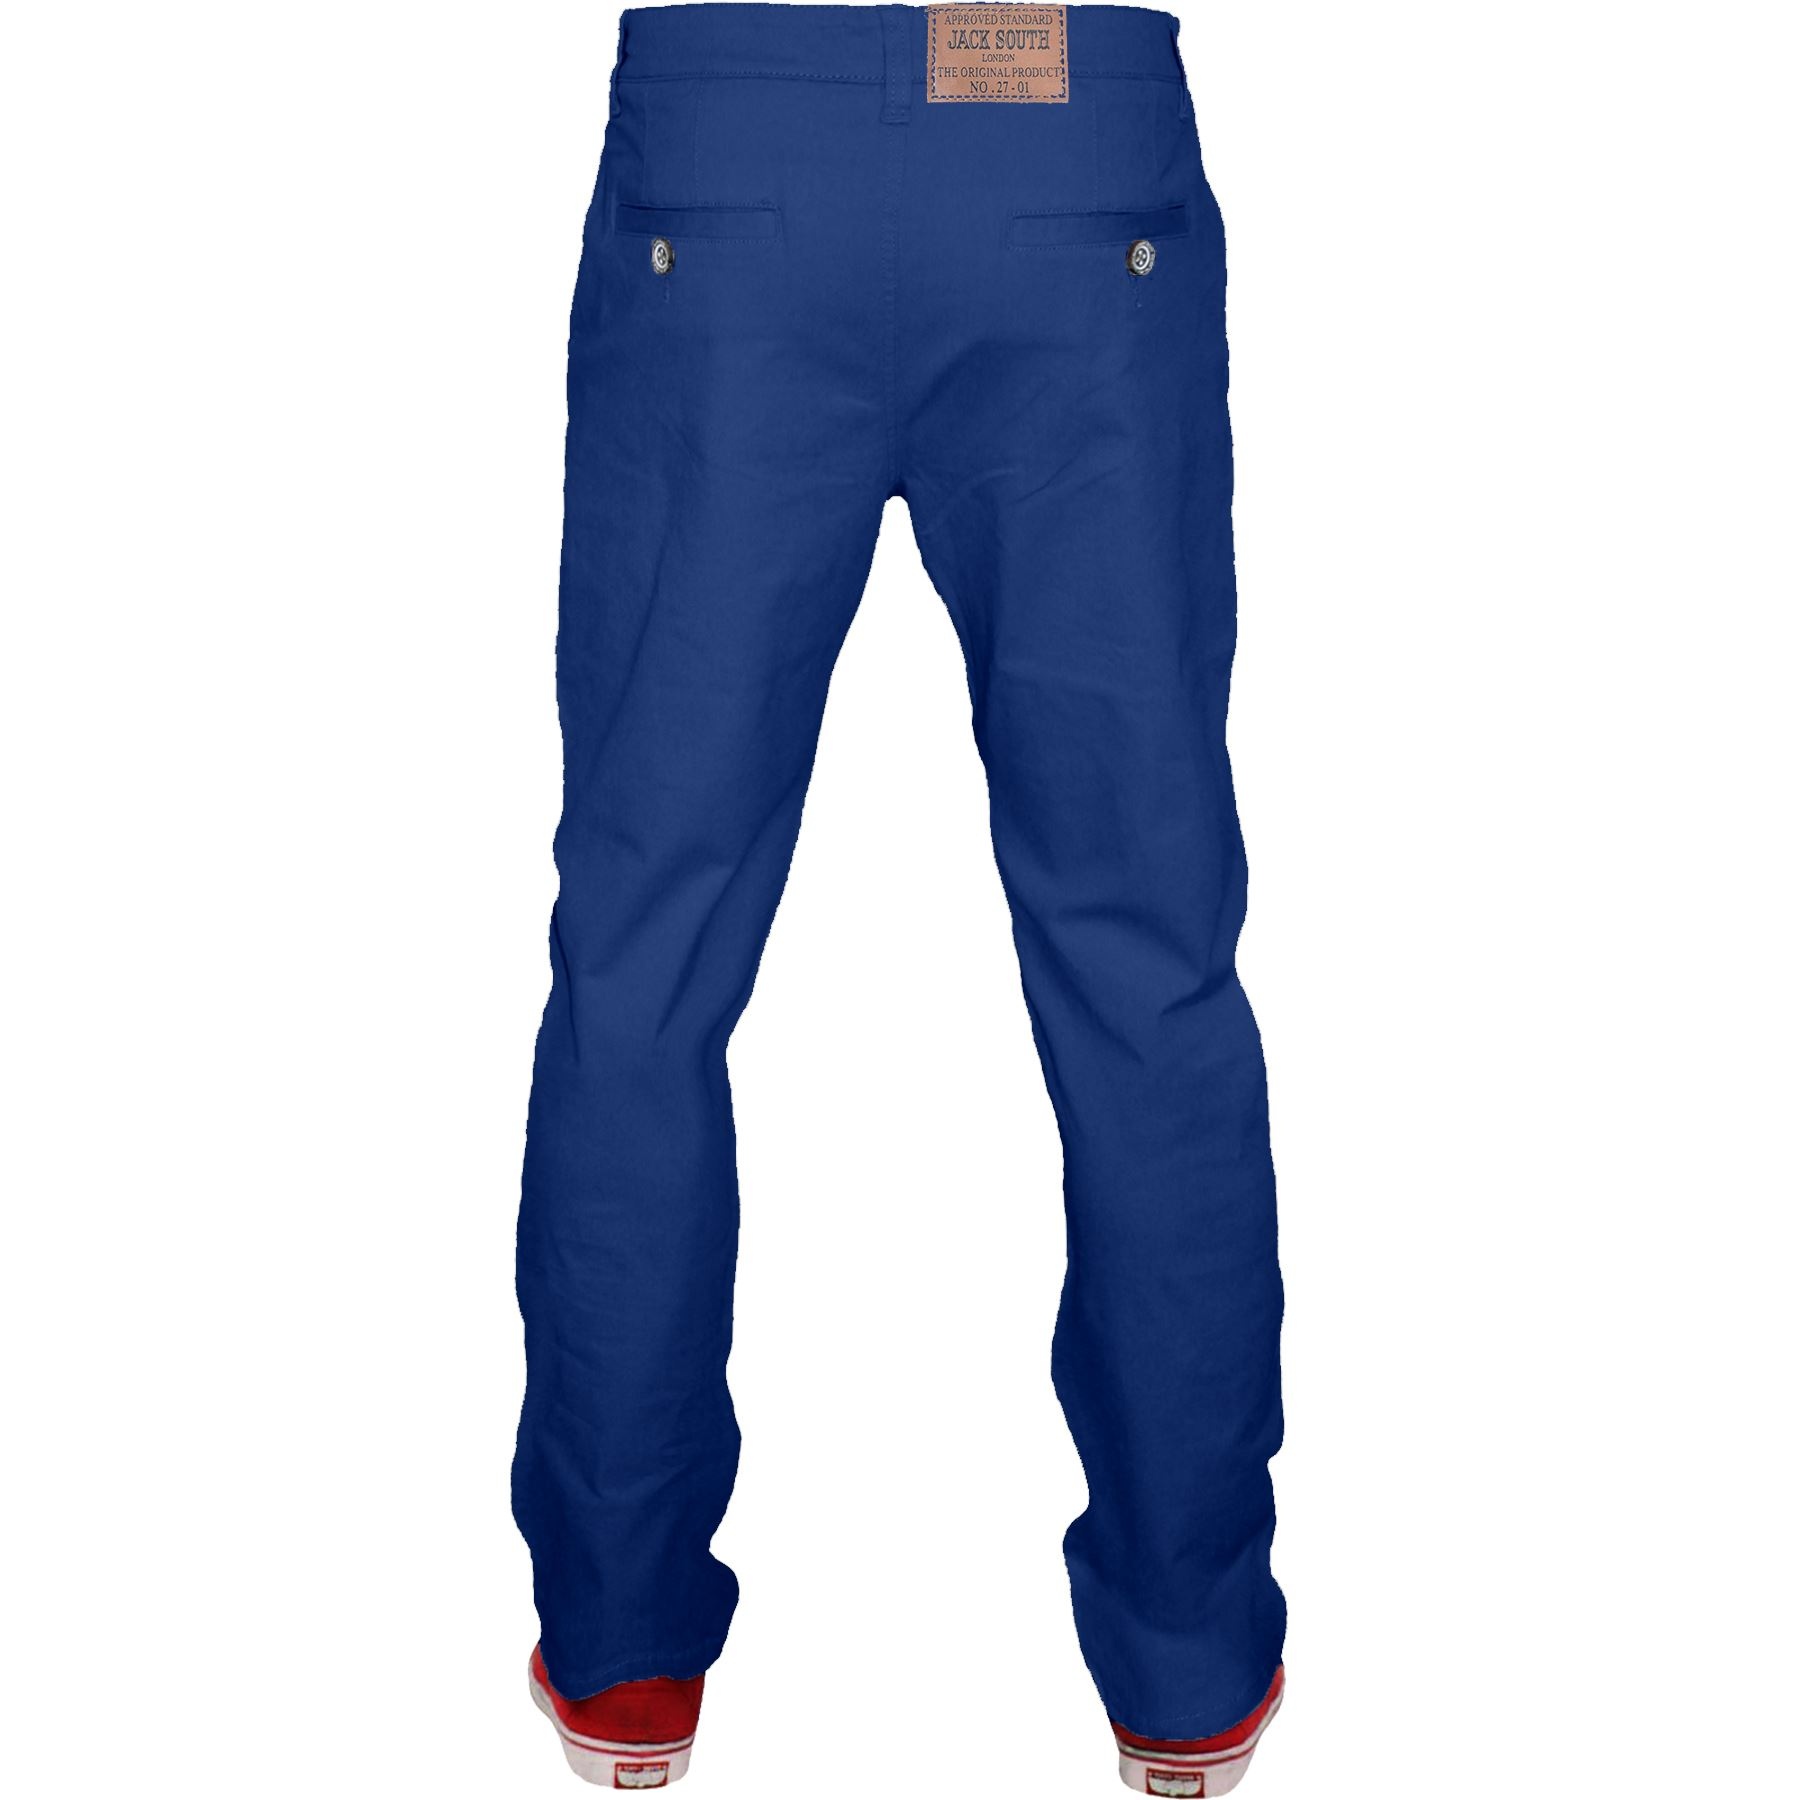 Mens-Chino-Classic-Regular-Fit-Trouser-Casual-Stretch-Spandex-Pants-Size-32-40 thumbnail 22